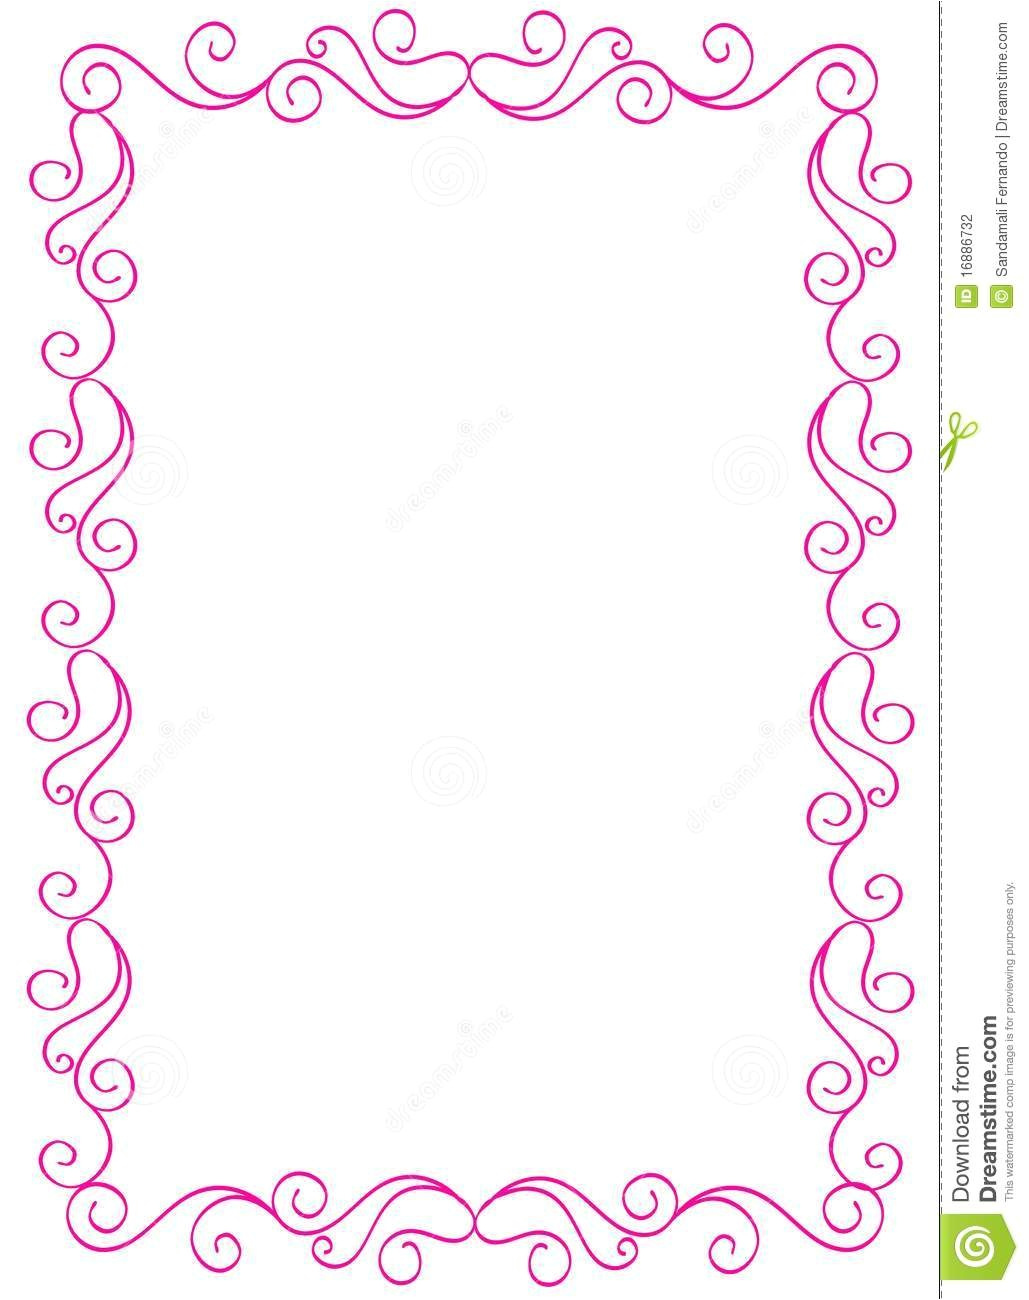 Borders for Party Invitations Free 7 Best Images Of Background Wedding Border Design Free